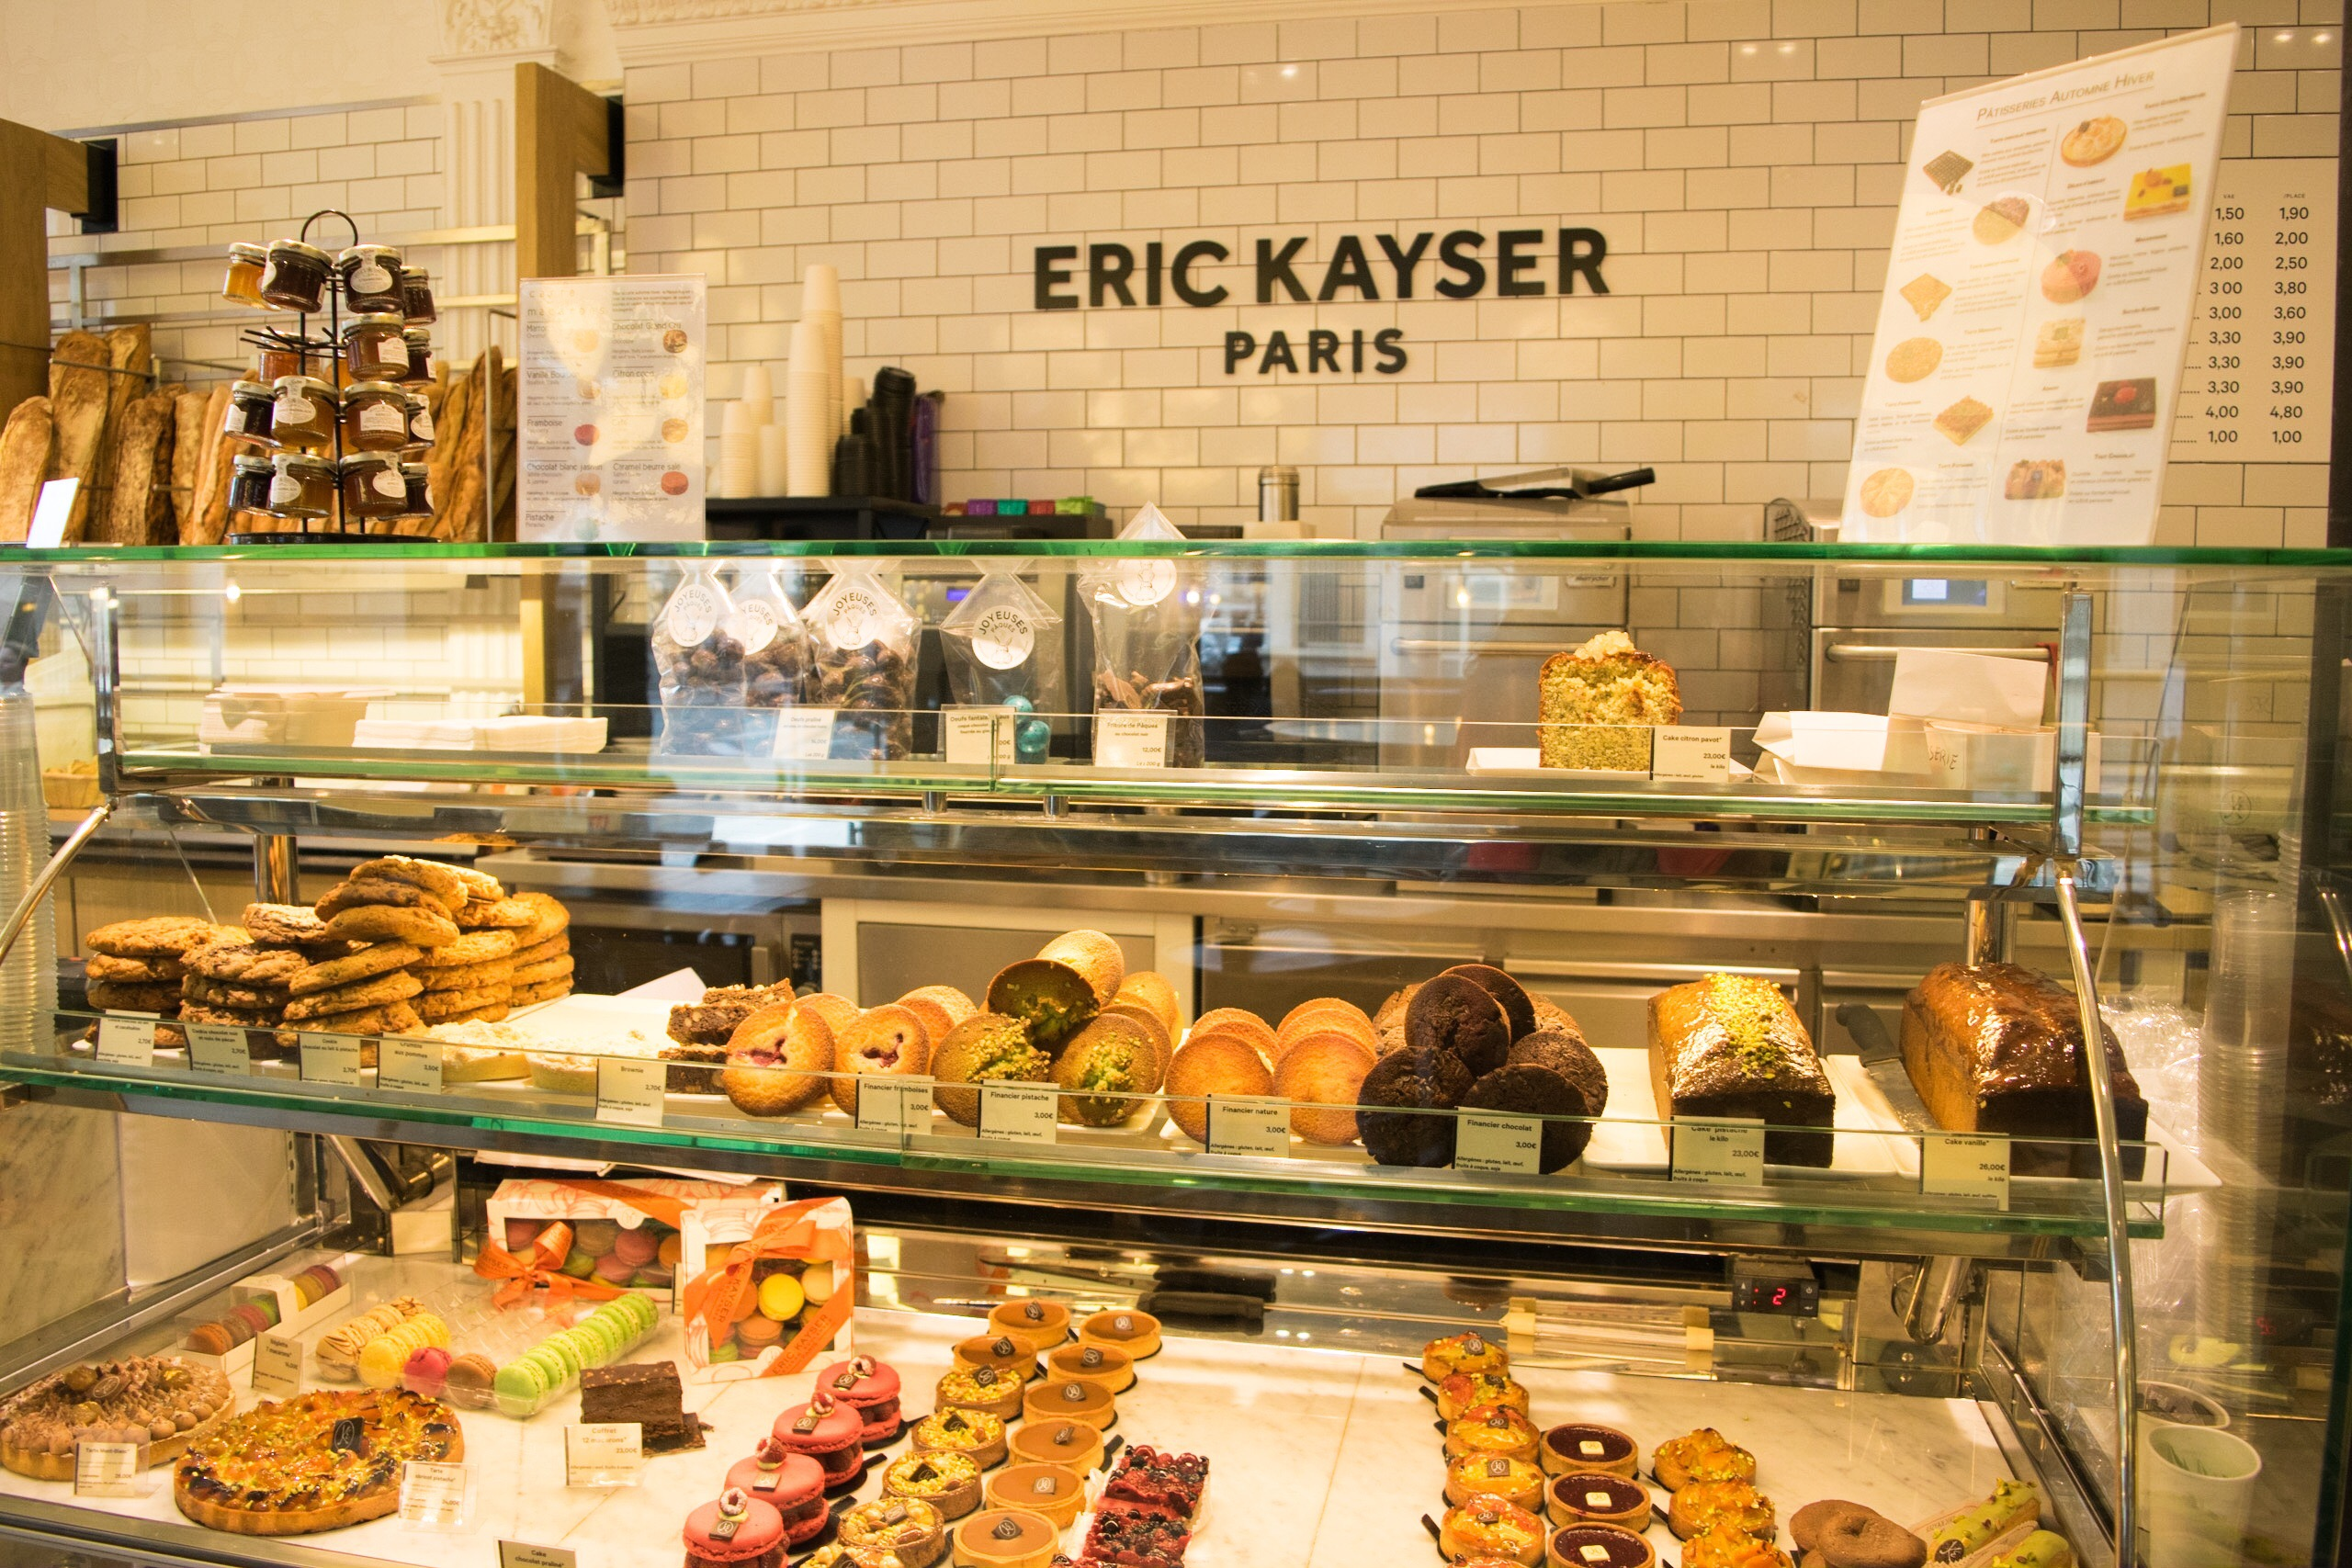 Eric Kayser in Paris